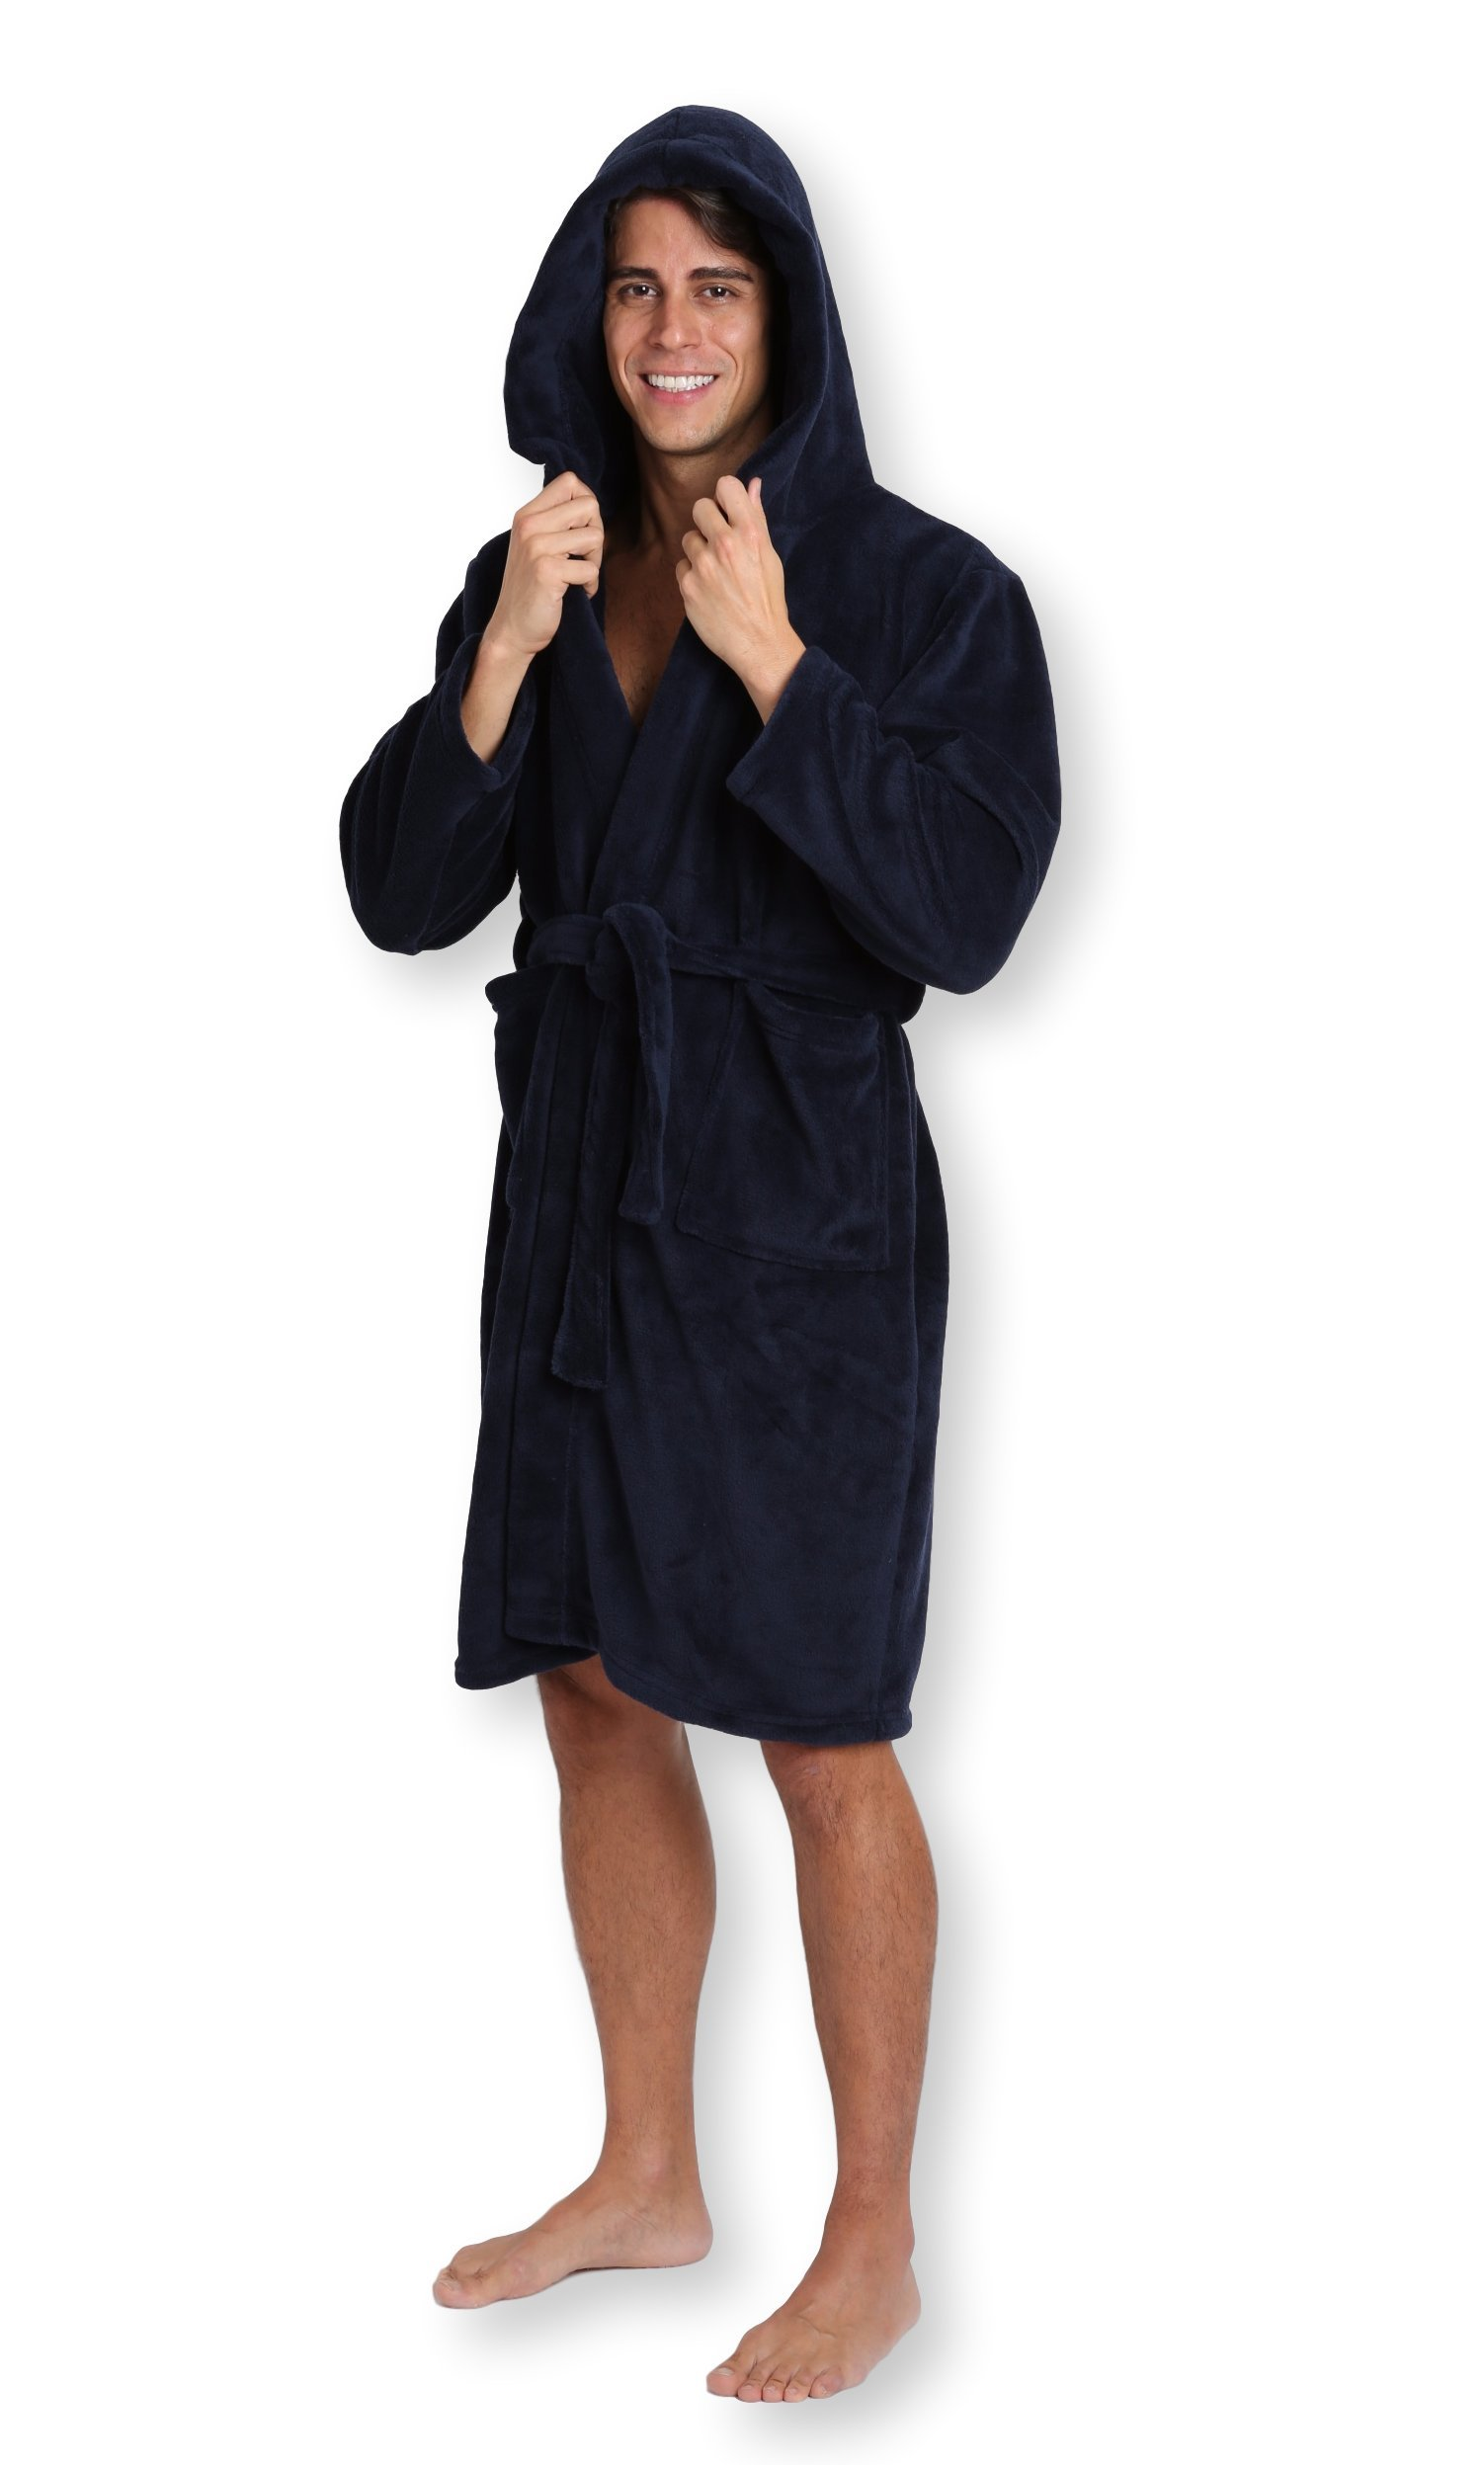 Pembrook Men's Robe with Hood – Navy - Size L/XL - Soft Fleece – Hotel Spa Bathrobe